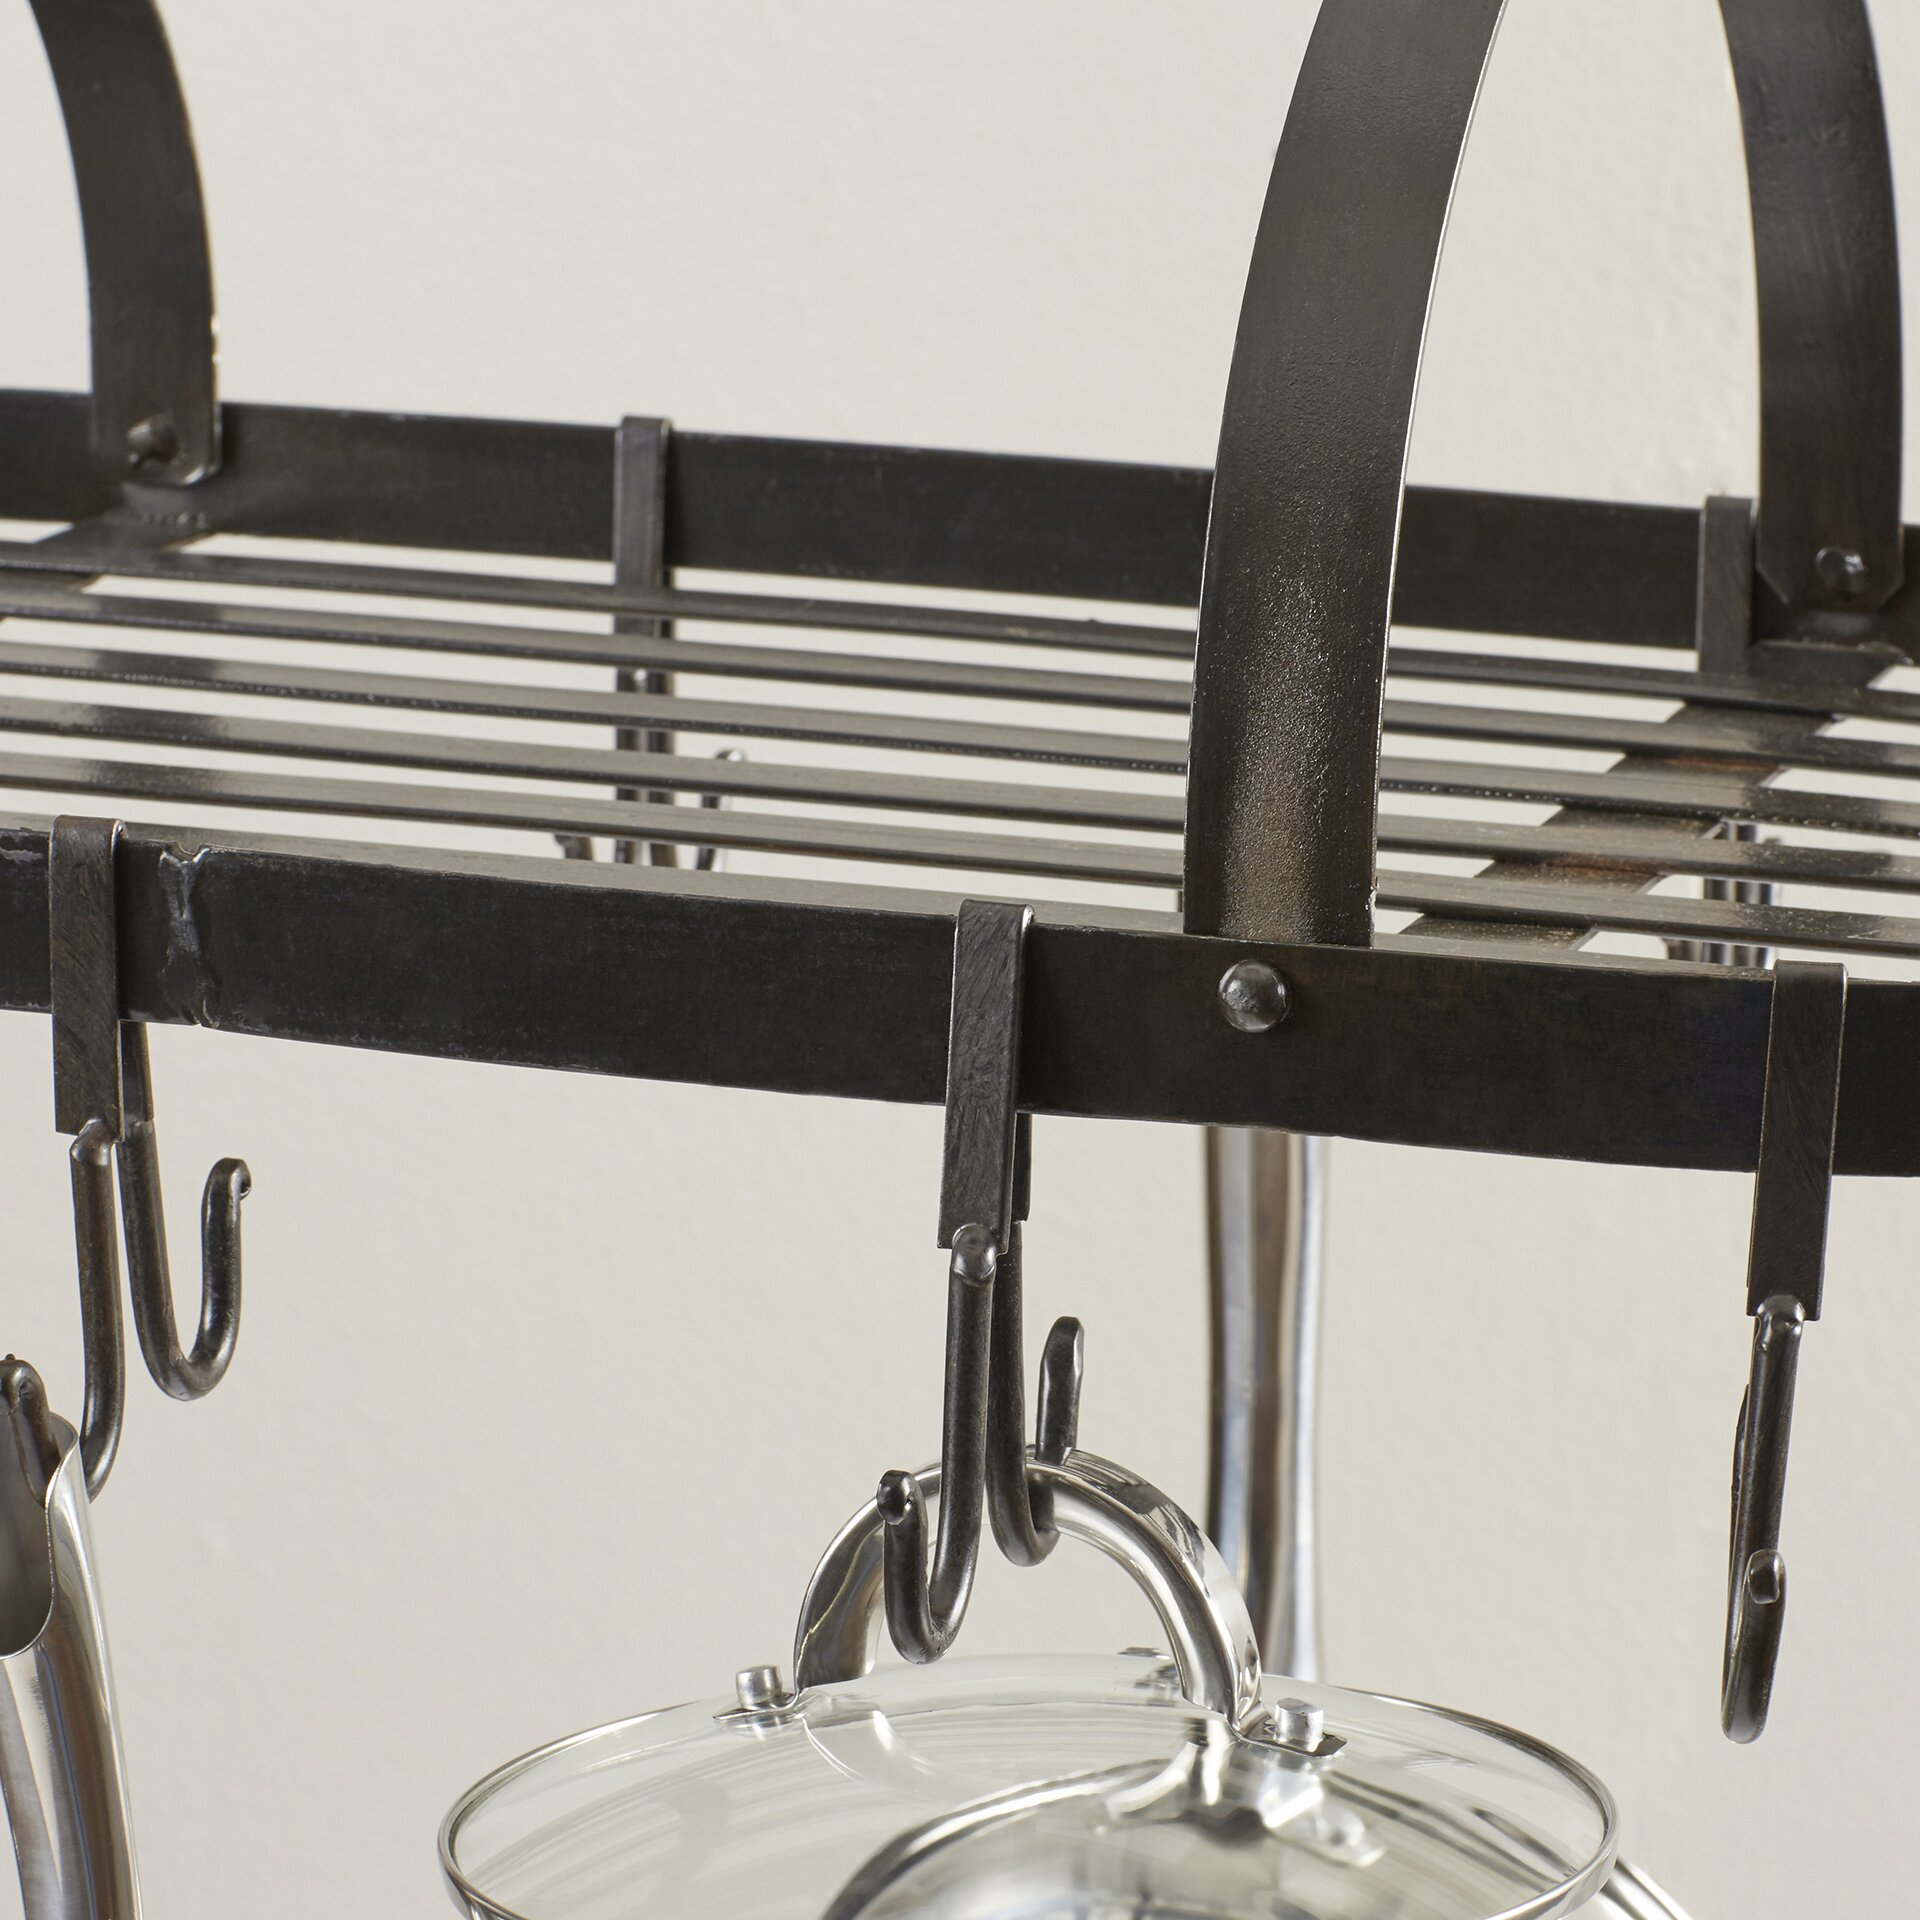 Darby Home Co Kitchen Hanging Pot Rack Reviews